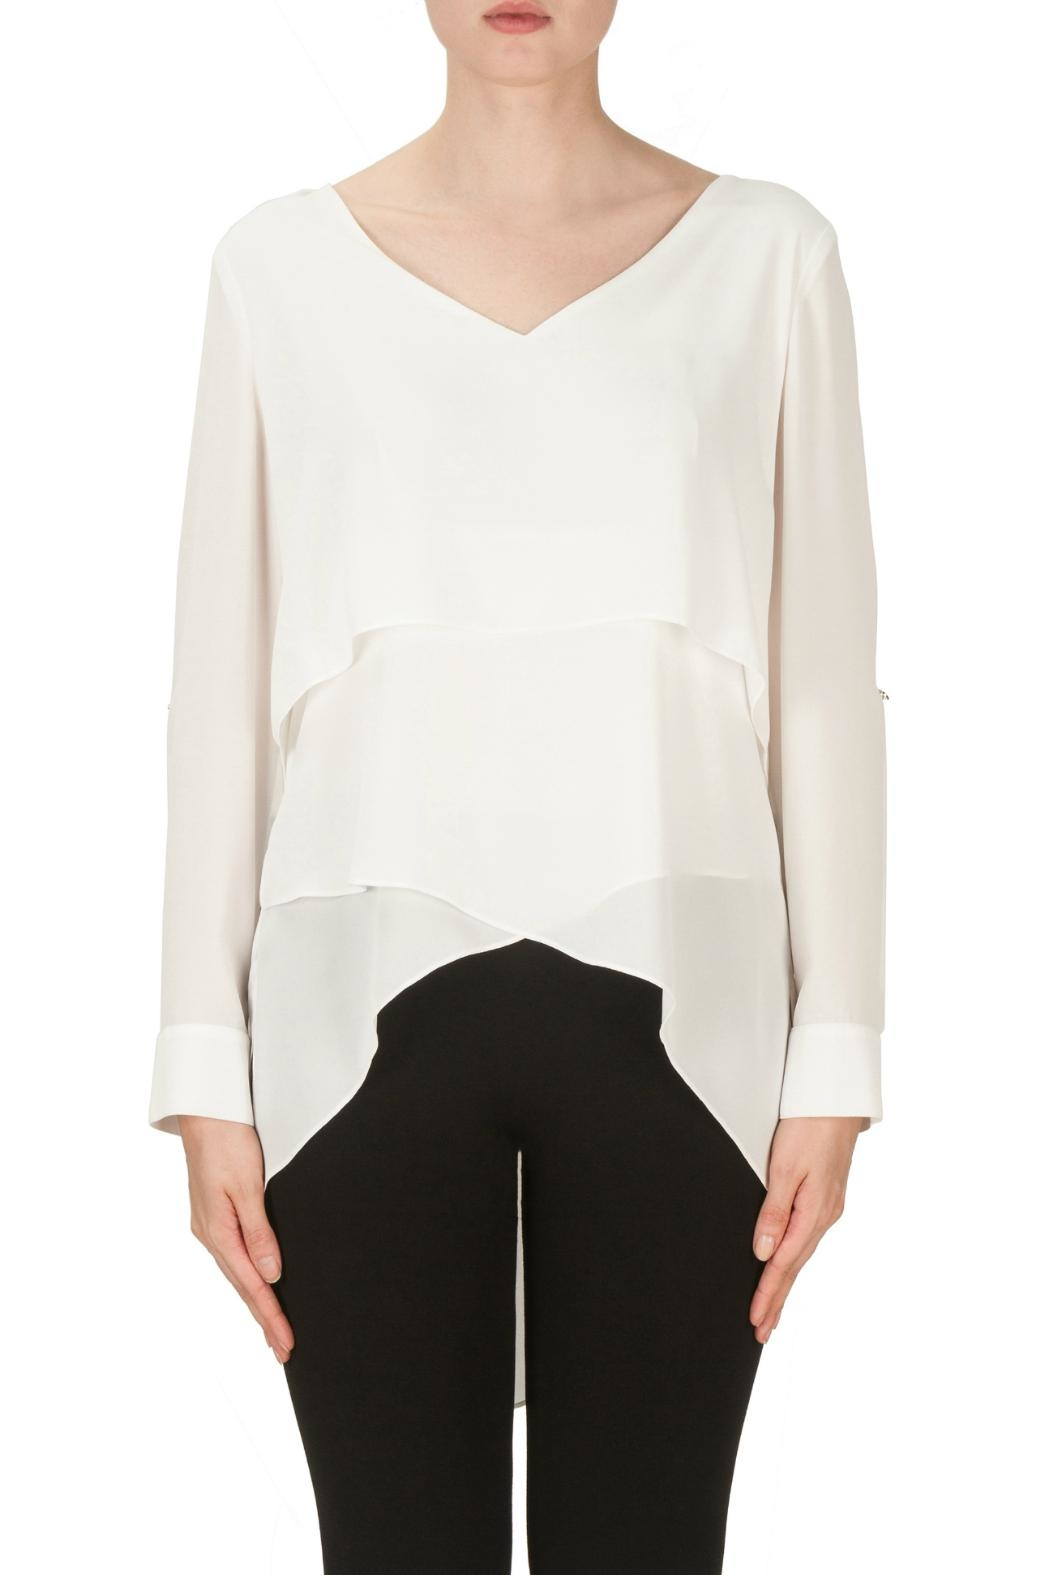 Joseph Ribkoff Layer Cuffed Blouse - Main Image